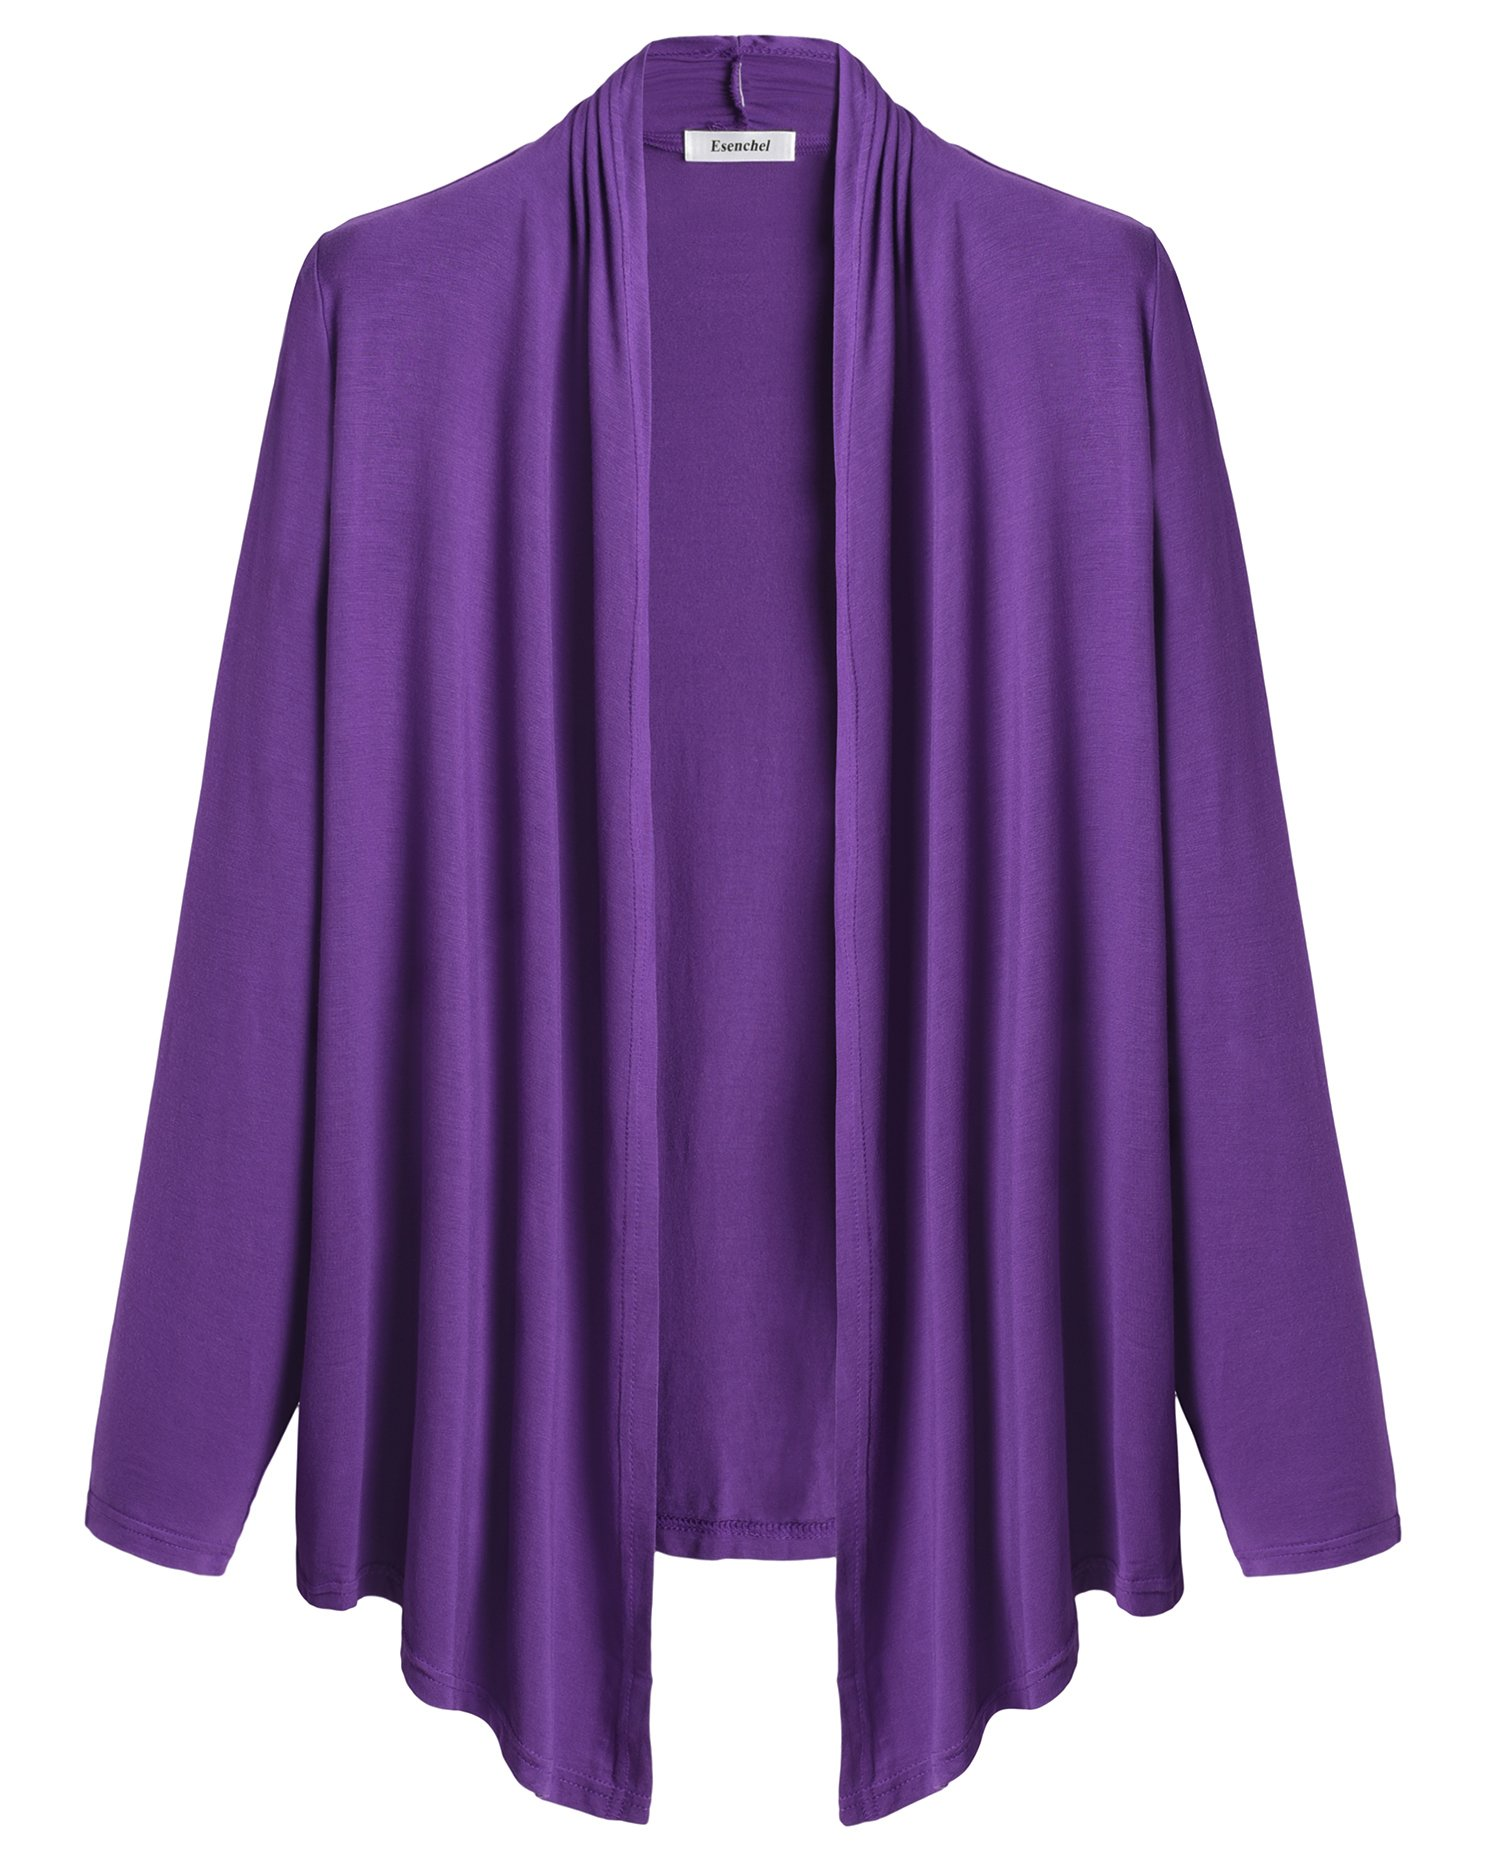 Esenchel Women's Lightweight Open Front Cardigan 3X Purple